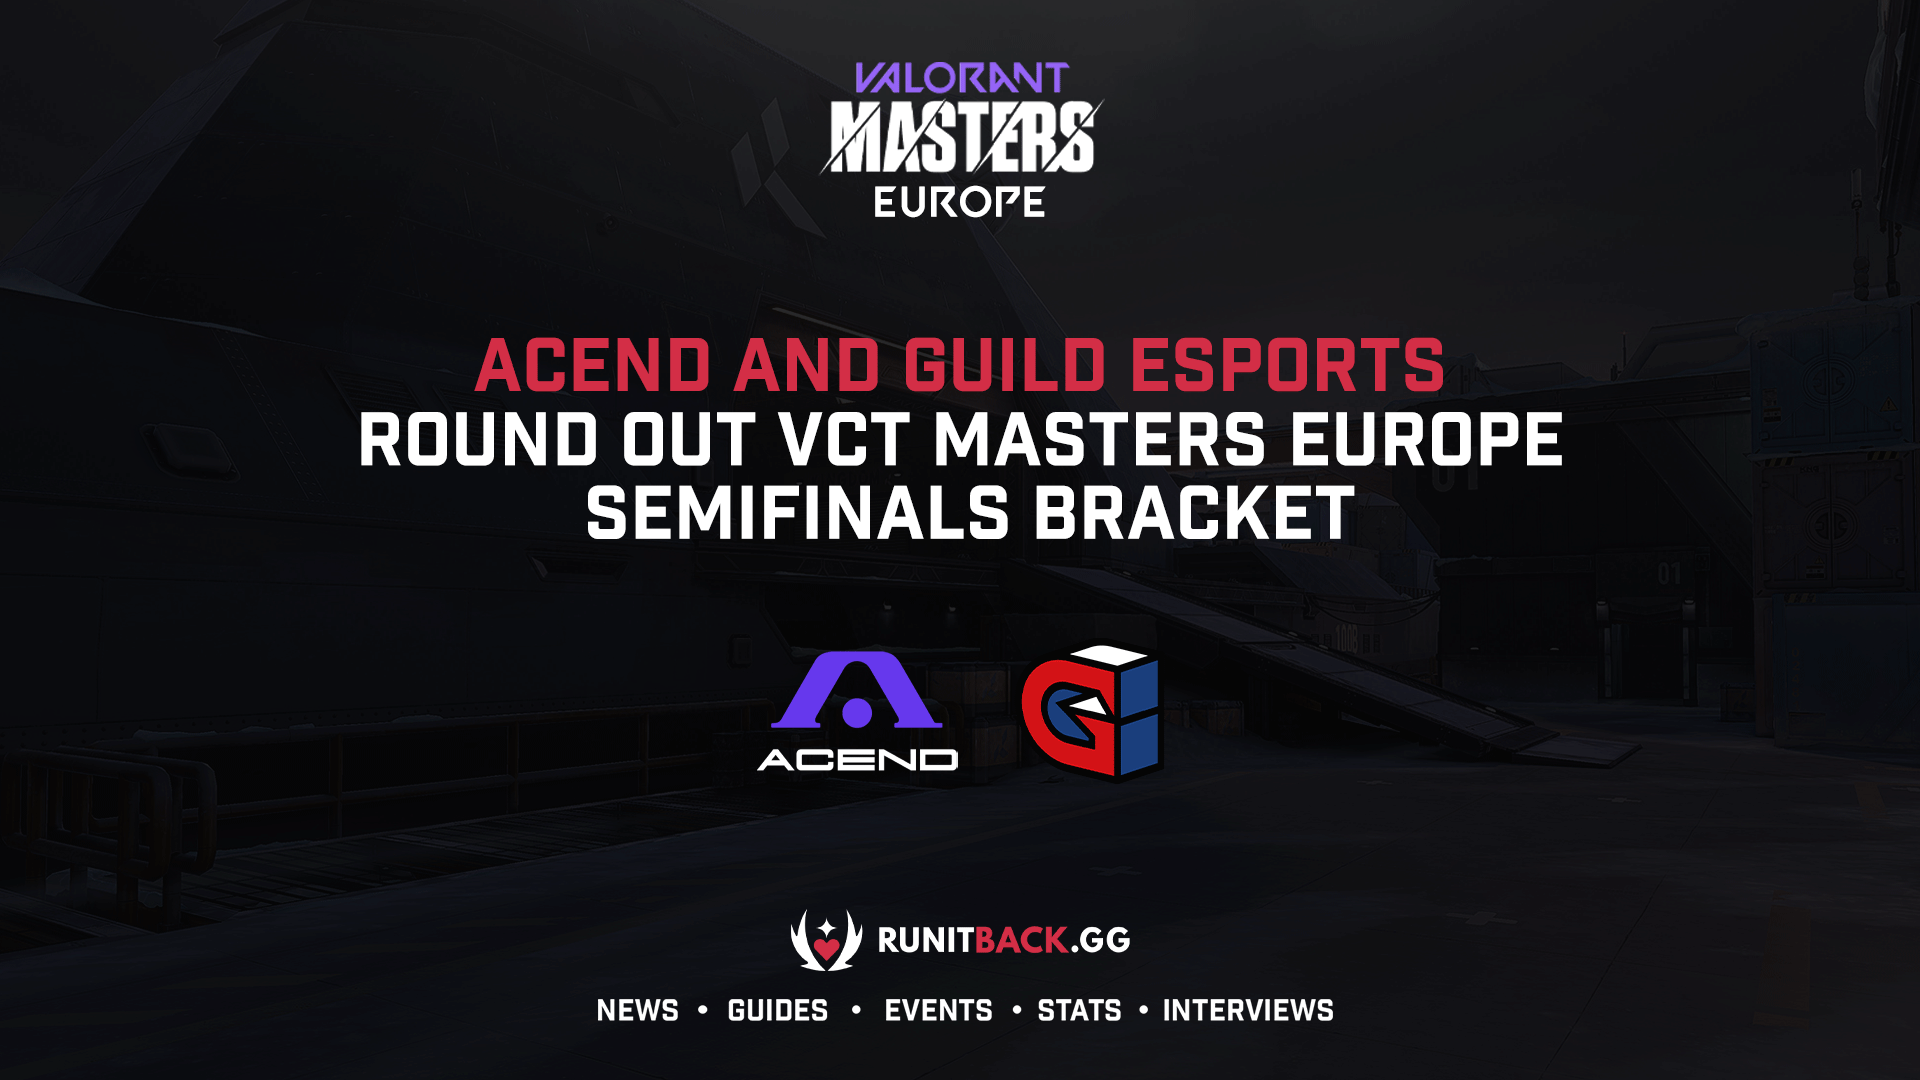 Acend and Guild Esports round out VCT Masters Europe semifinals bracket